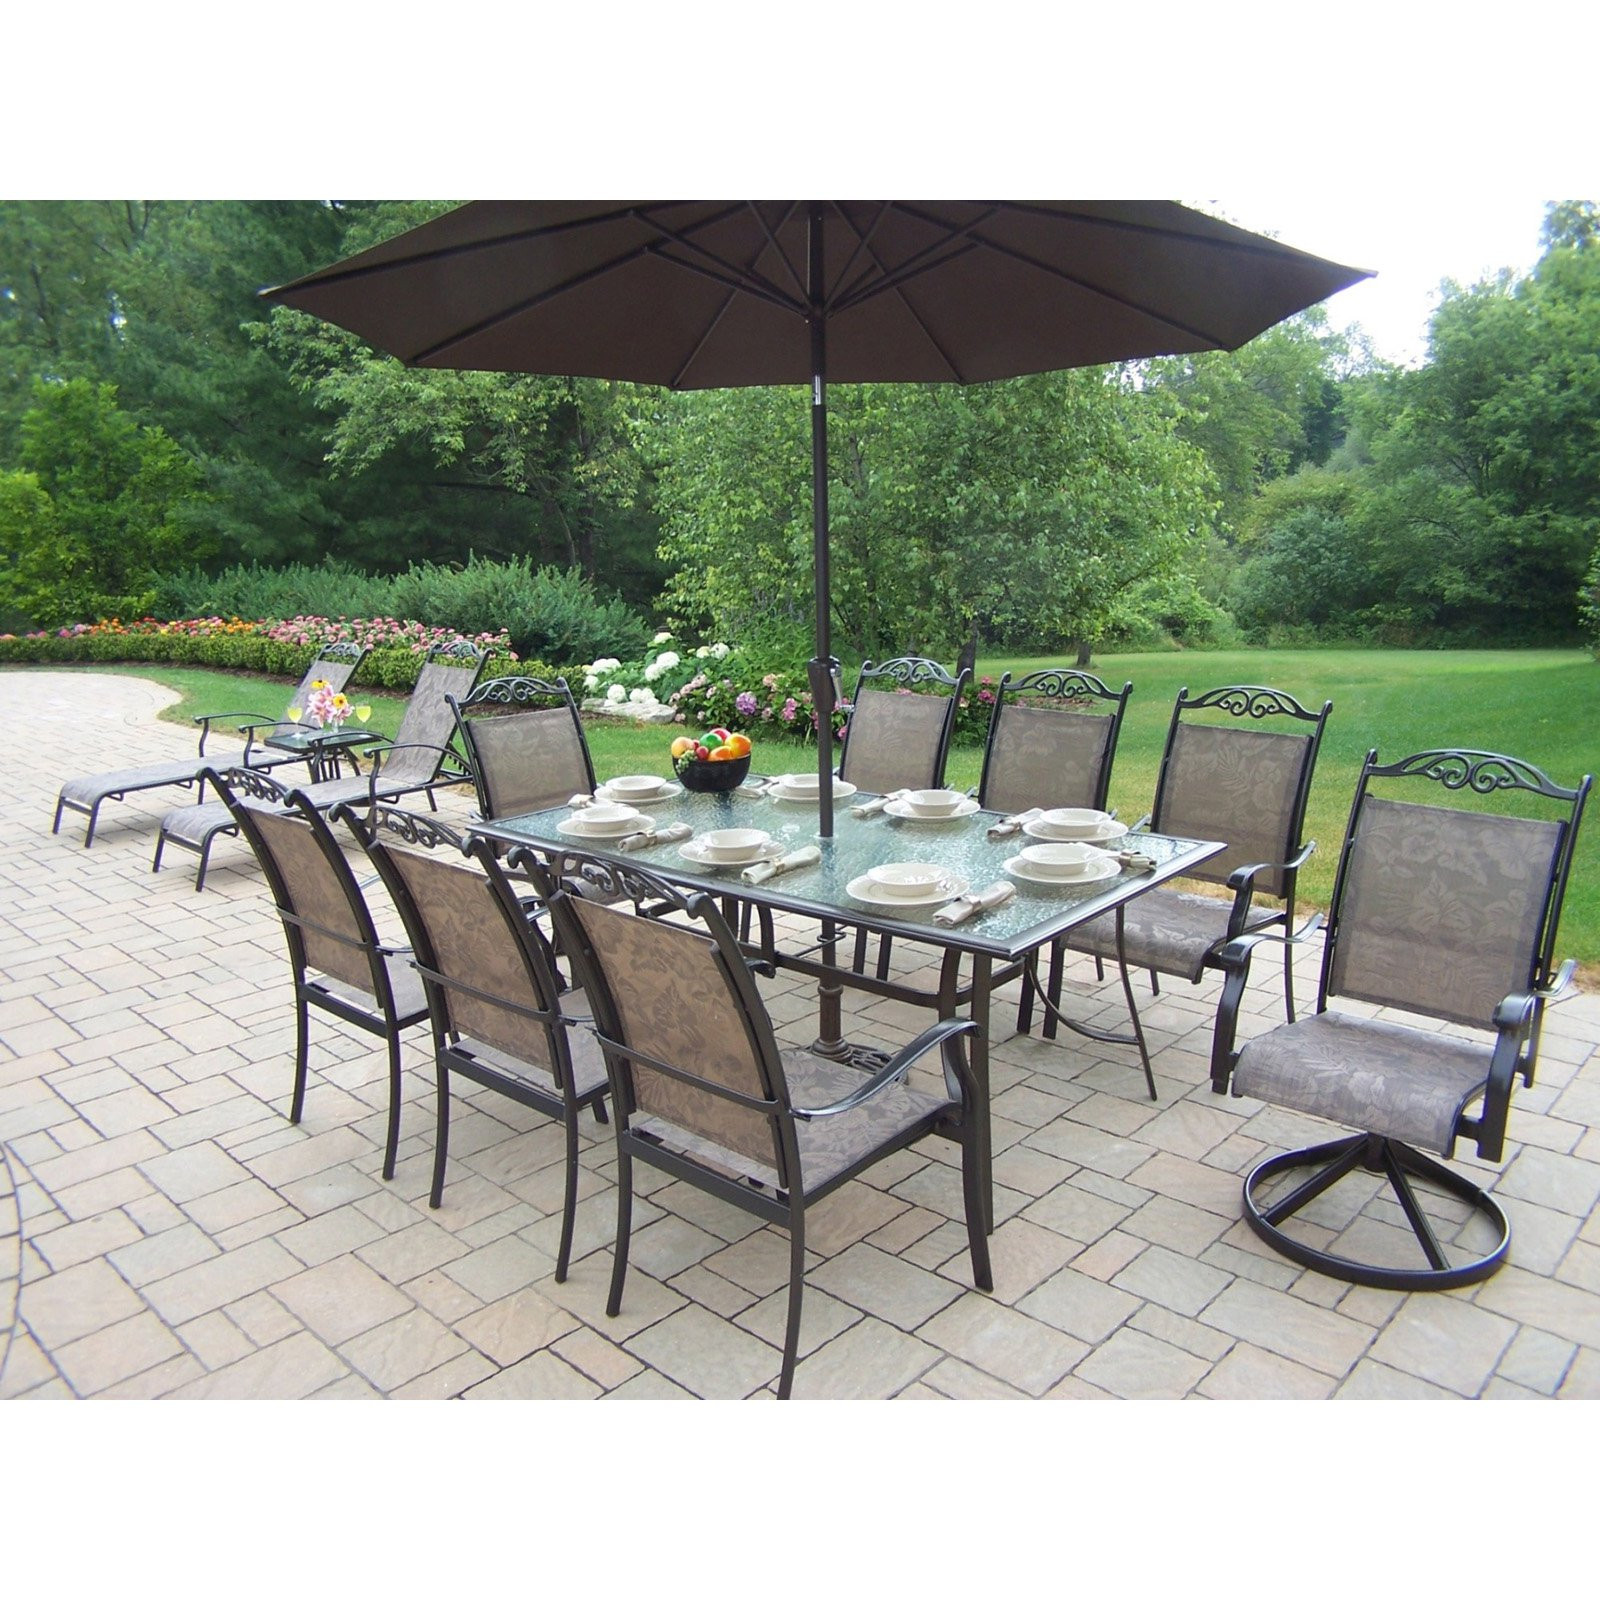 Best ideas about Patio Set With Umbrella . Save or Pin Oakland Living Cascade Patio Dining Set with Umbrella and Now.